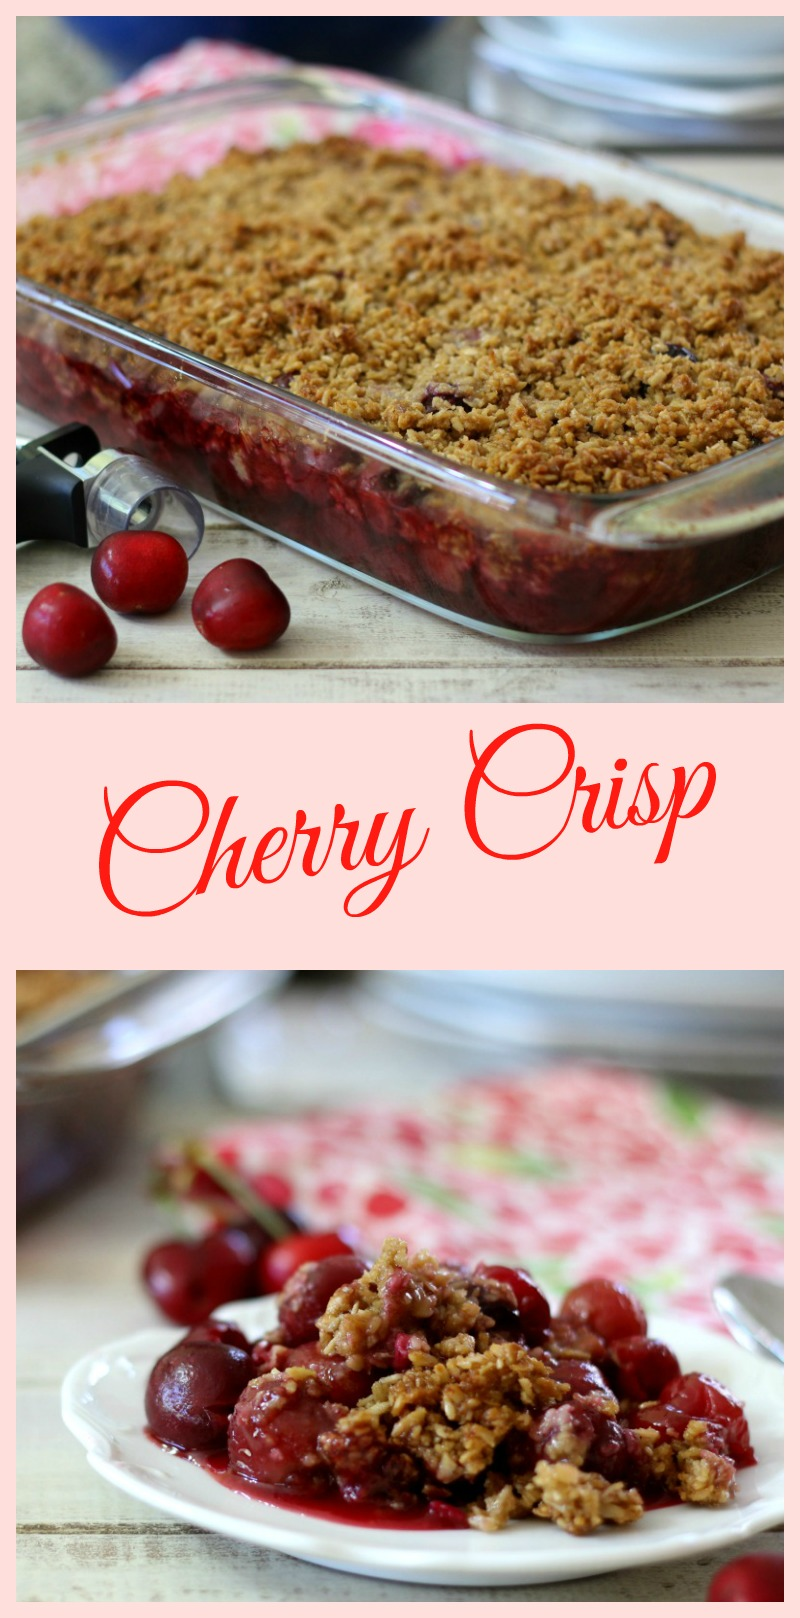 Cherry Cobbler With Crumb Topping